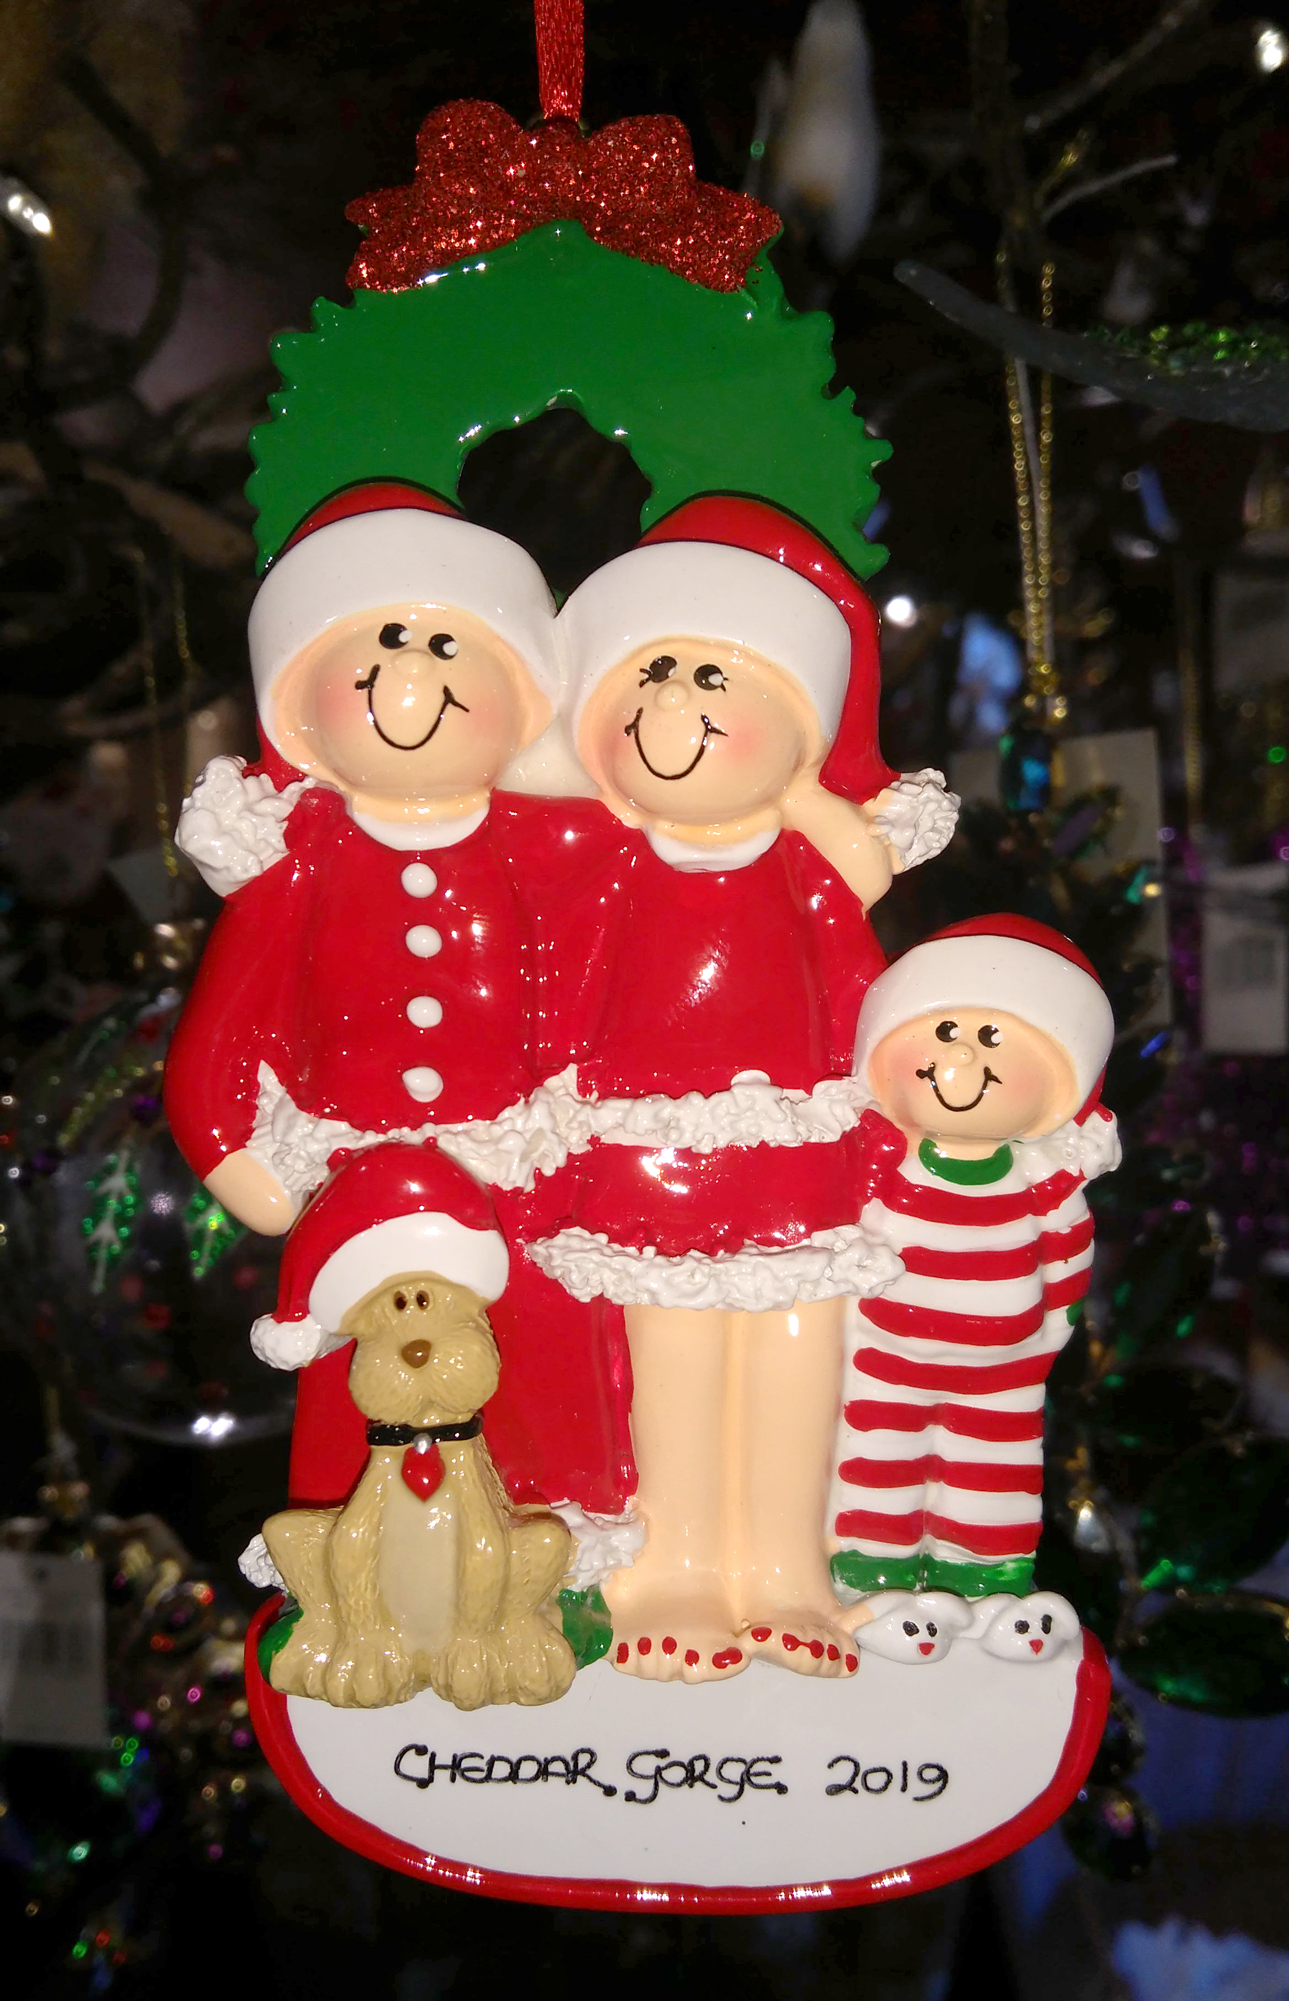 Cheddar Gorge Family of 3 with Dog - Hanging Decoration